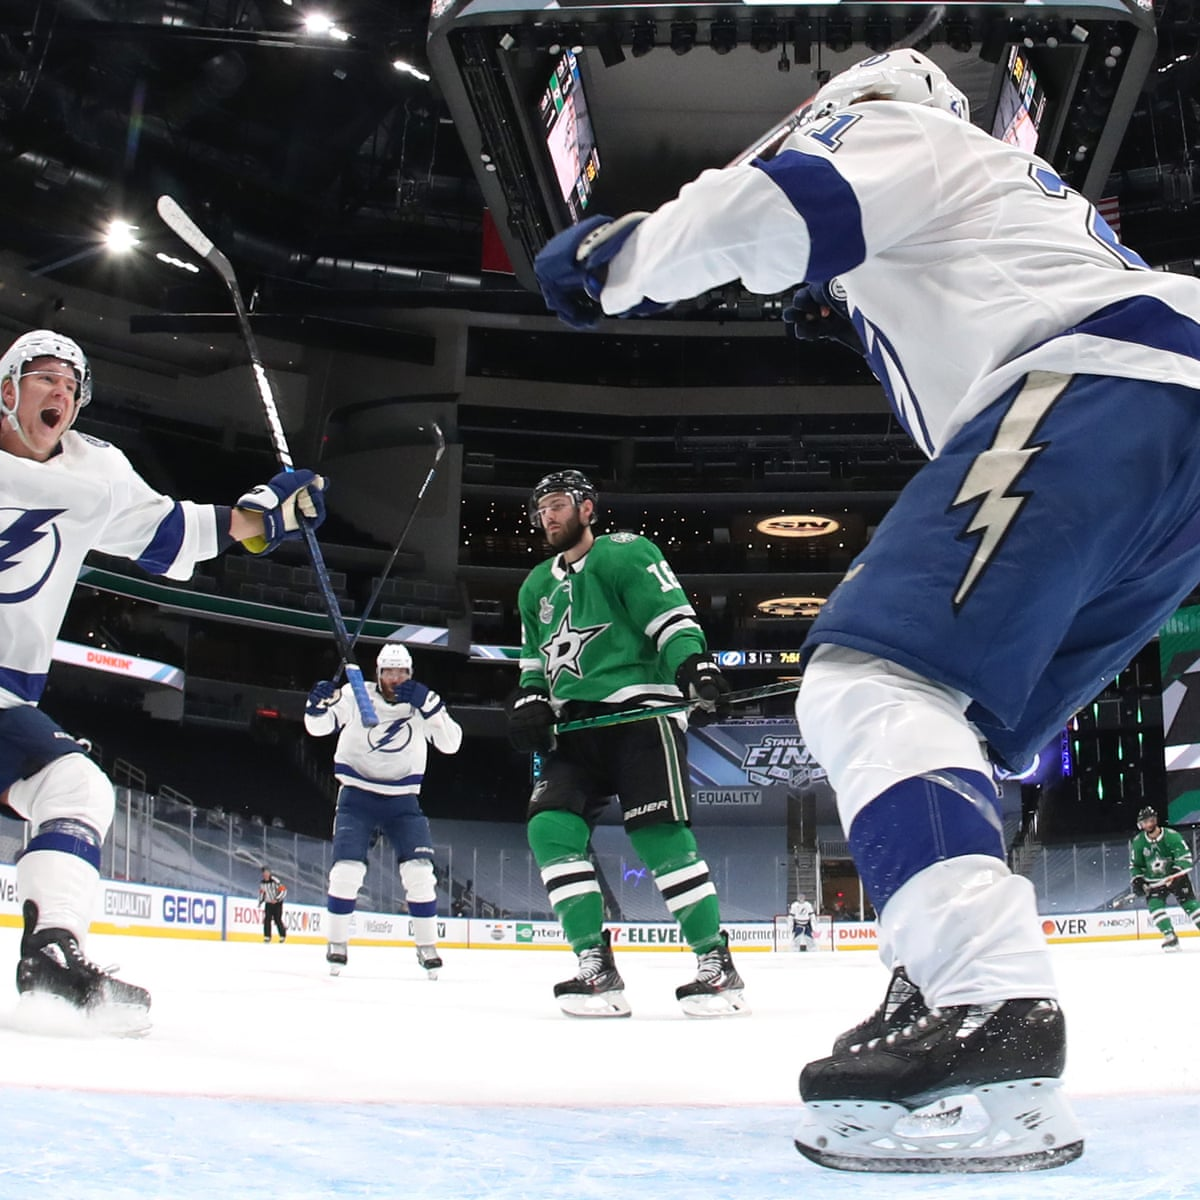 tampa bay lightning pour it on stars in game 3 as stamkos scores in comeback sport the guardian tampa bay lightning pour it on stars in